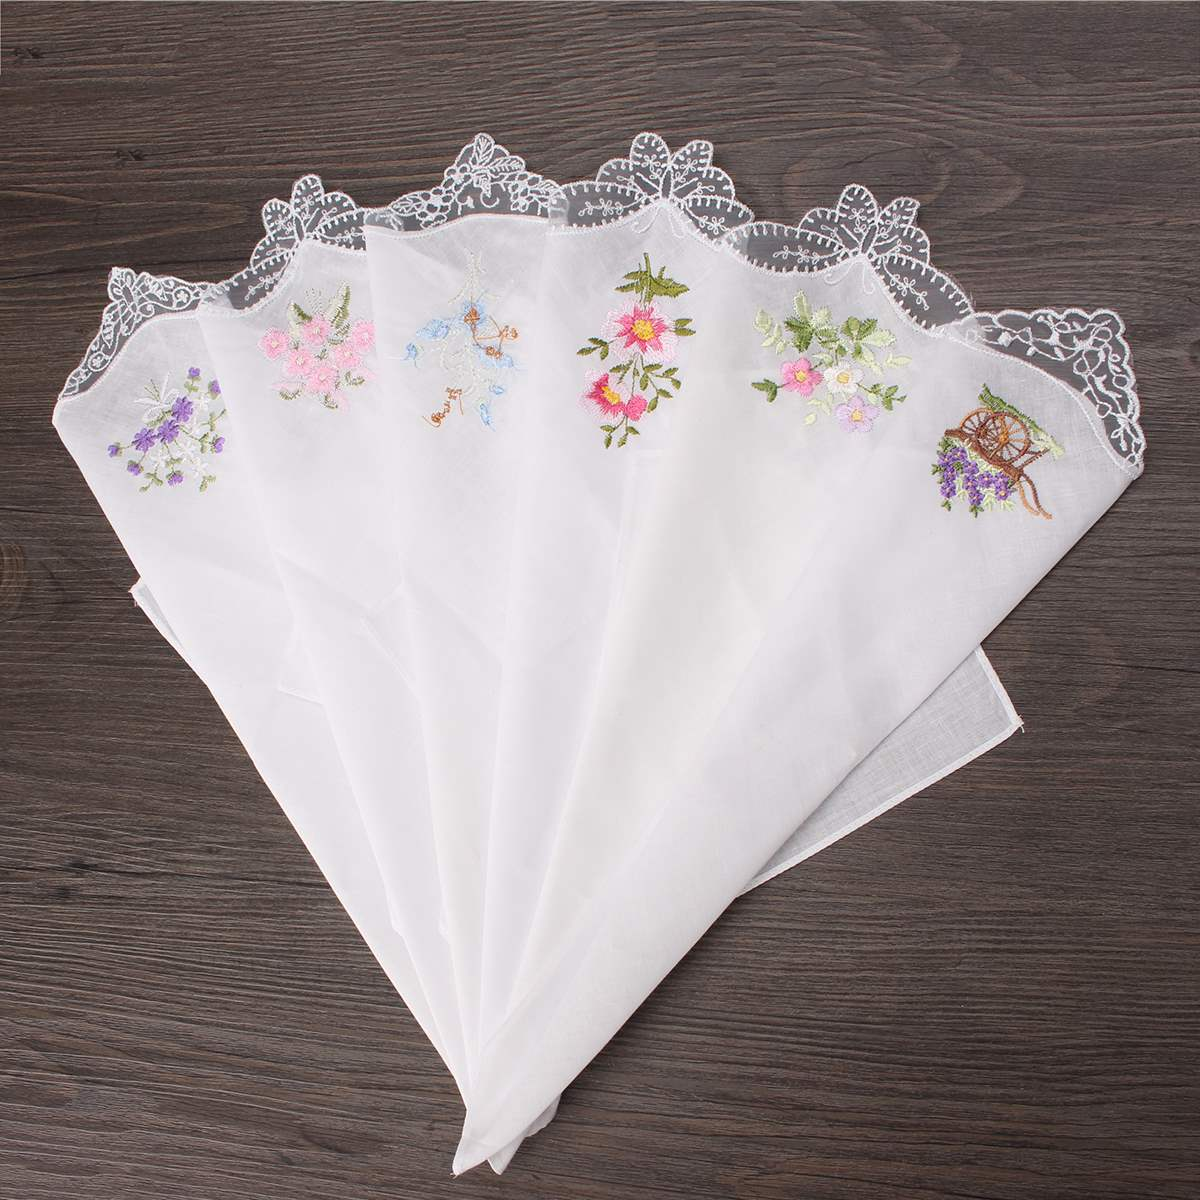 Embroidered Butterfly Lace Flower Hankies 6pcs Vintage